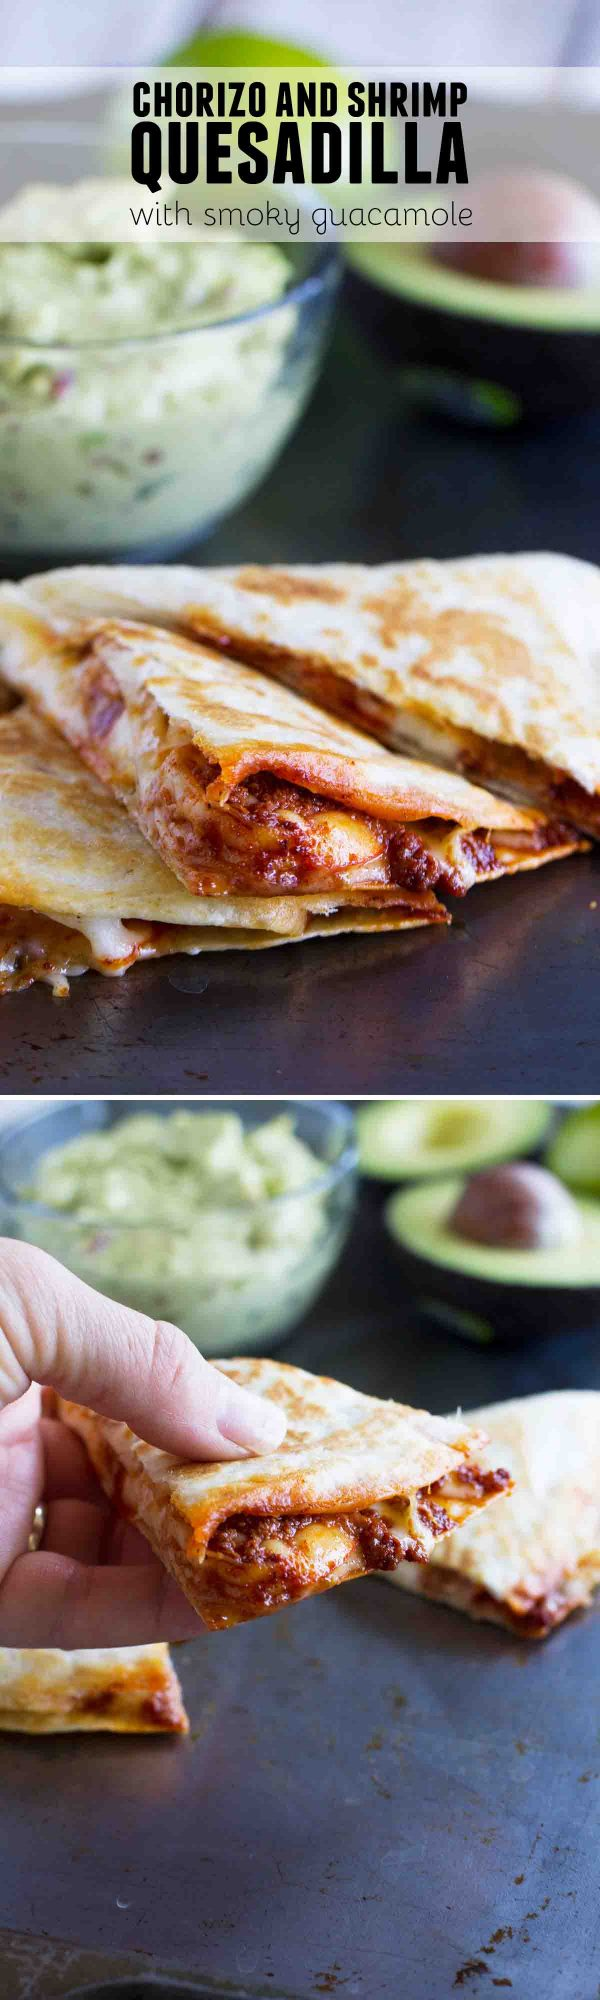 Get out of your quesadilla rut with these Chorizo and Shrimp Quesadillas with Smoky Guacamole. There is so much flavor and the guacamole takes it over the top!